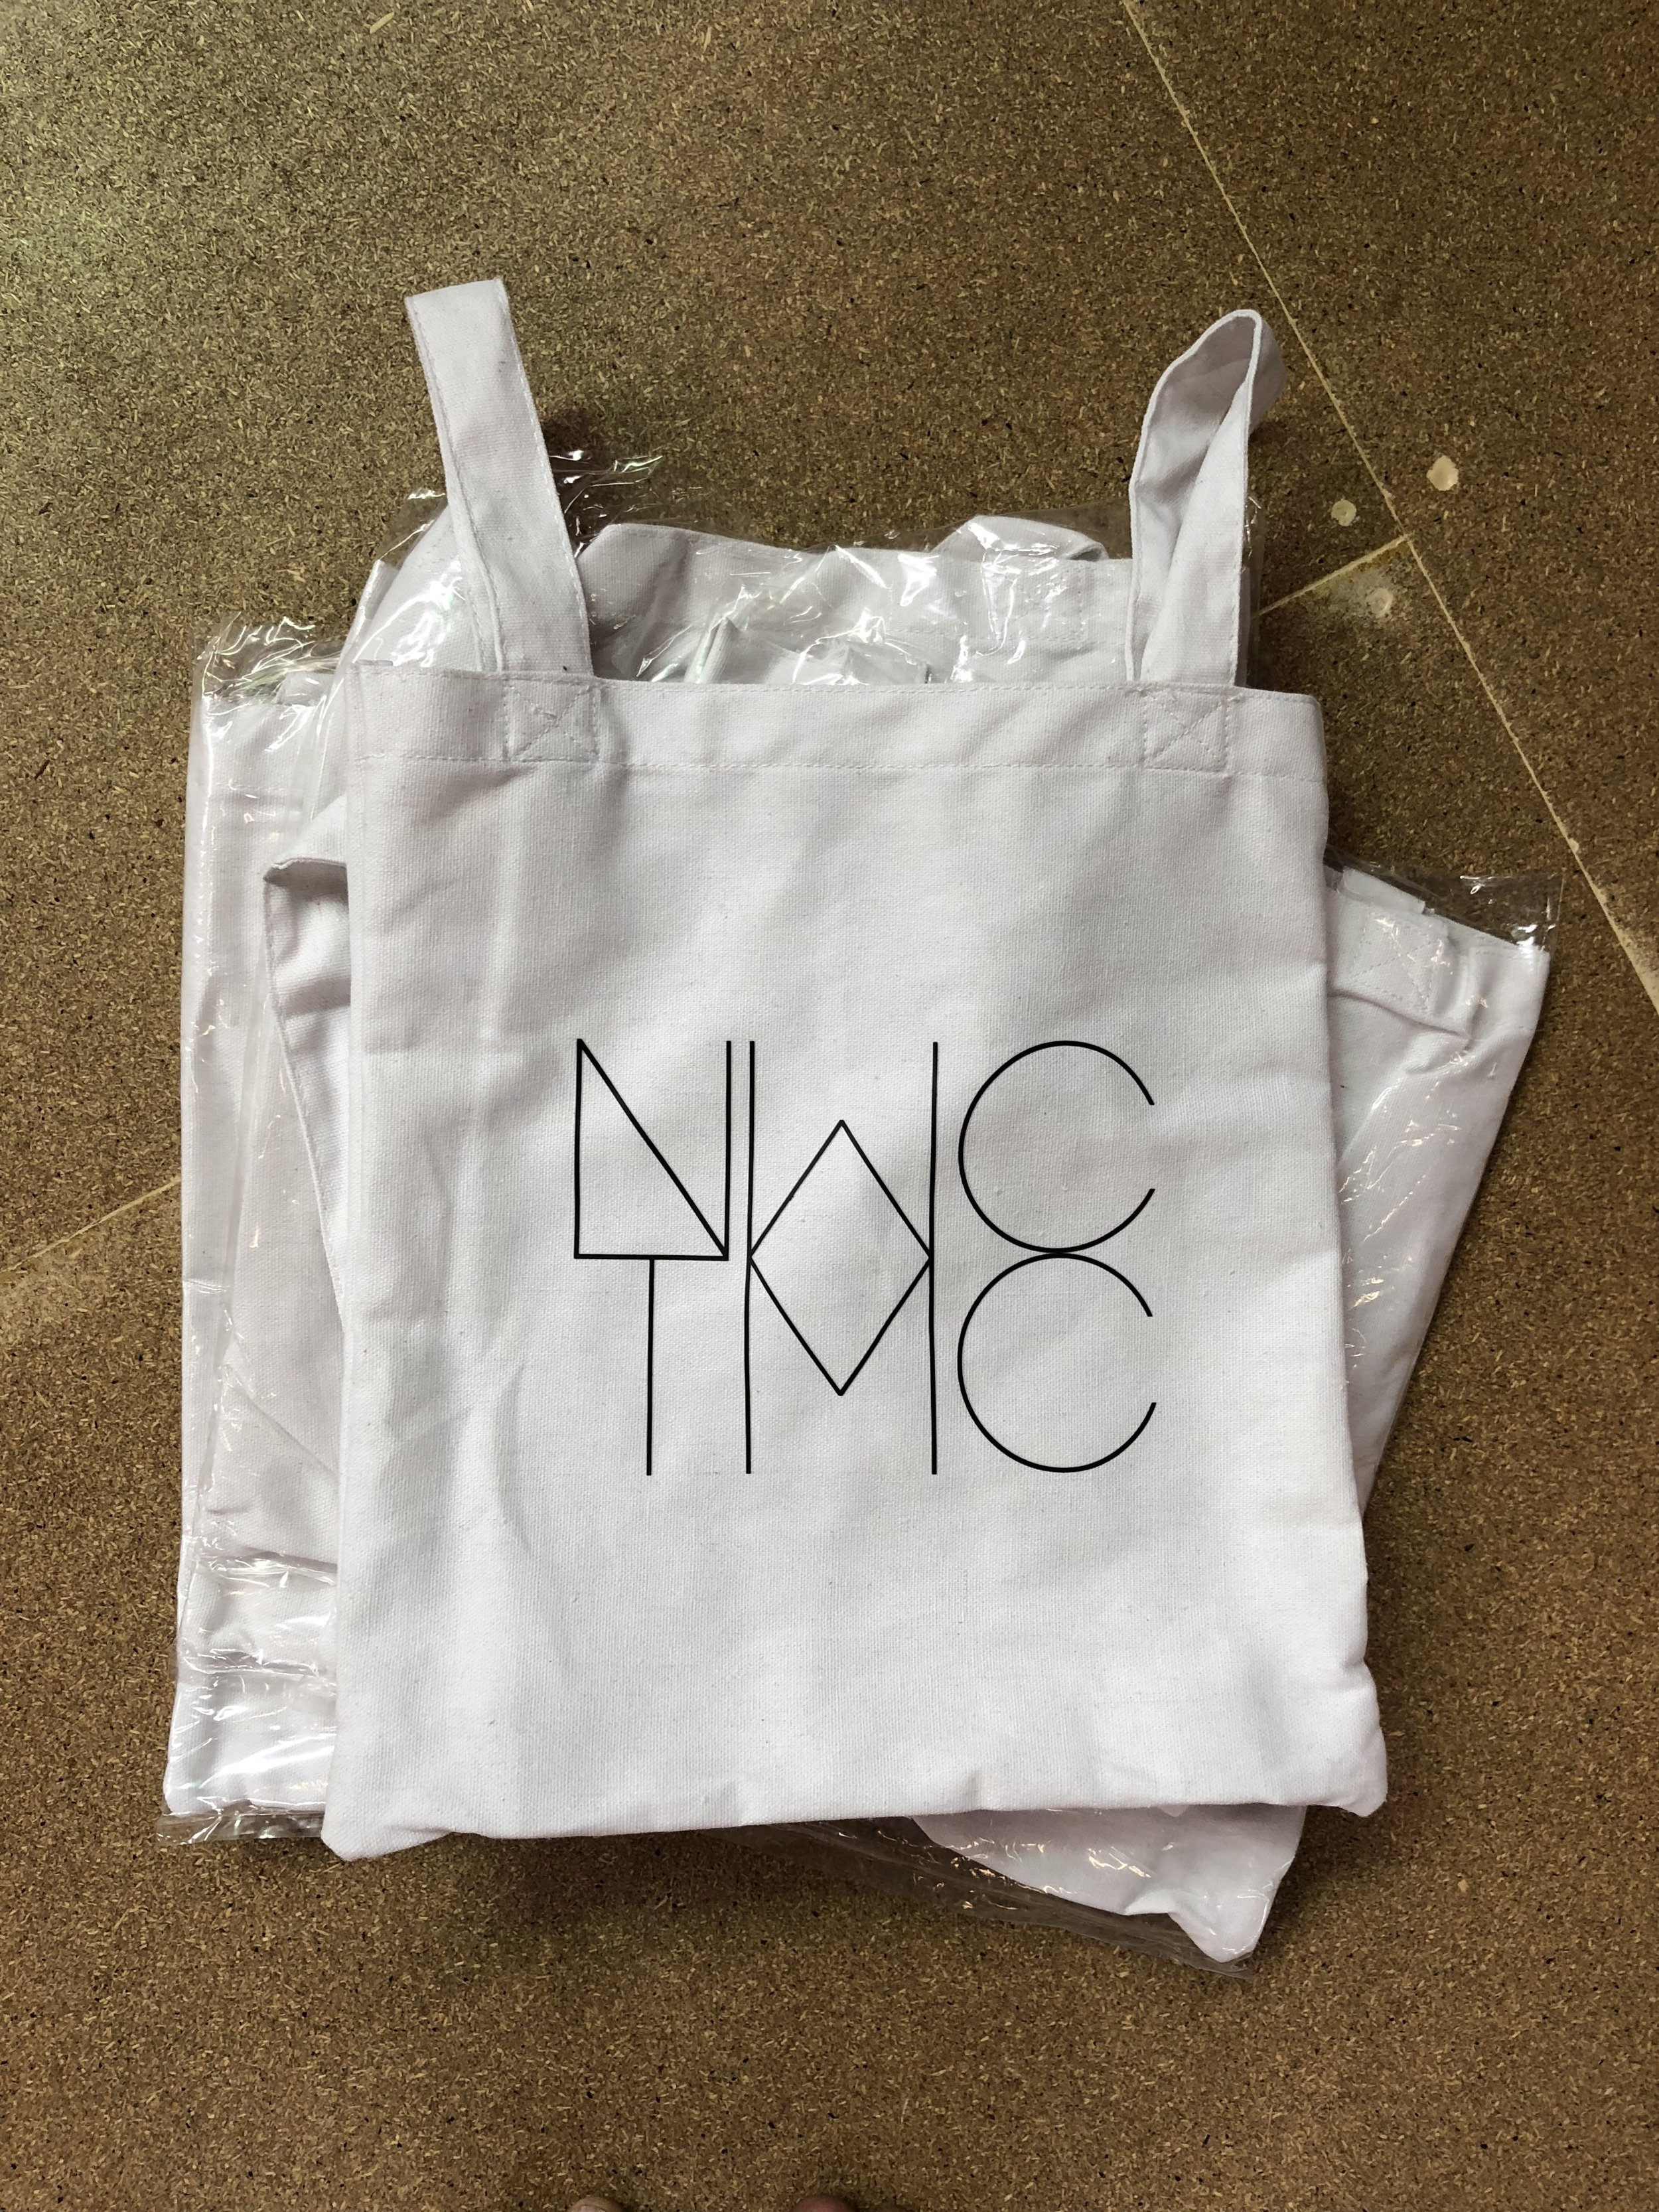 TMC BAG  $15 - Perfect for carrying your gym gear or shoppingPlease click image to purchase